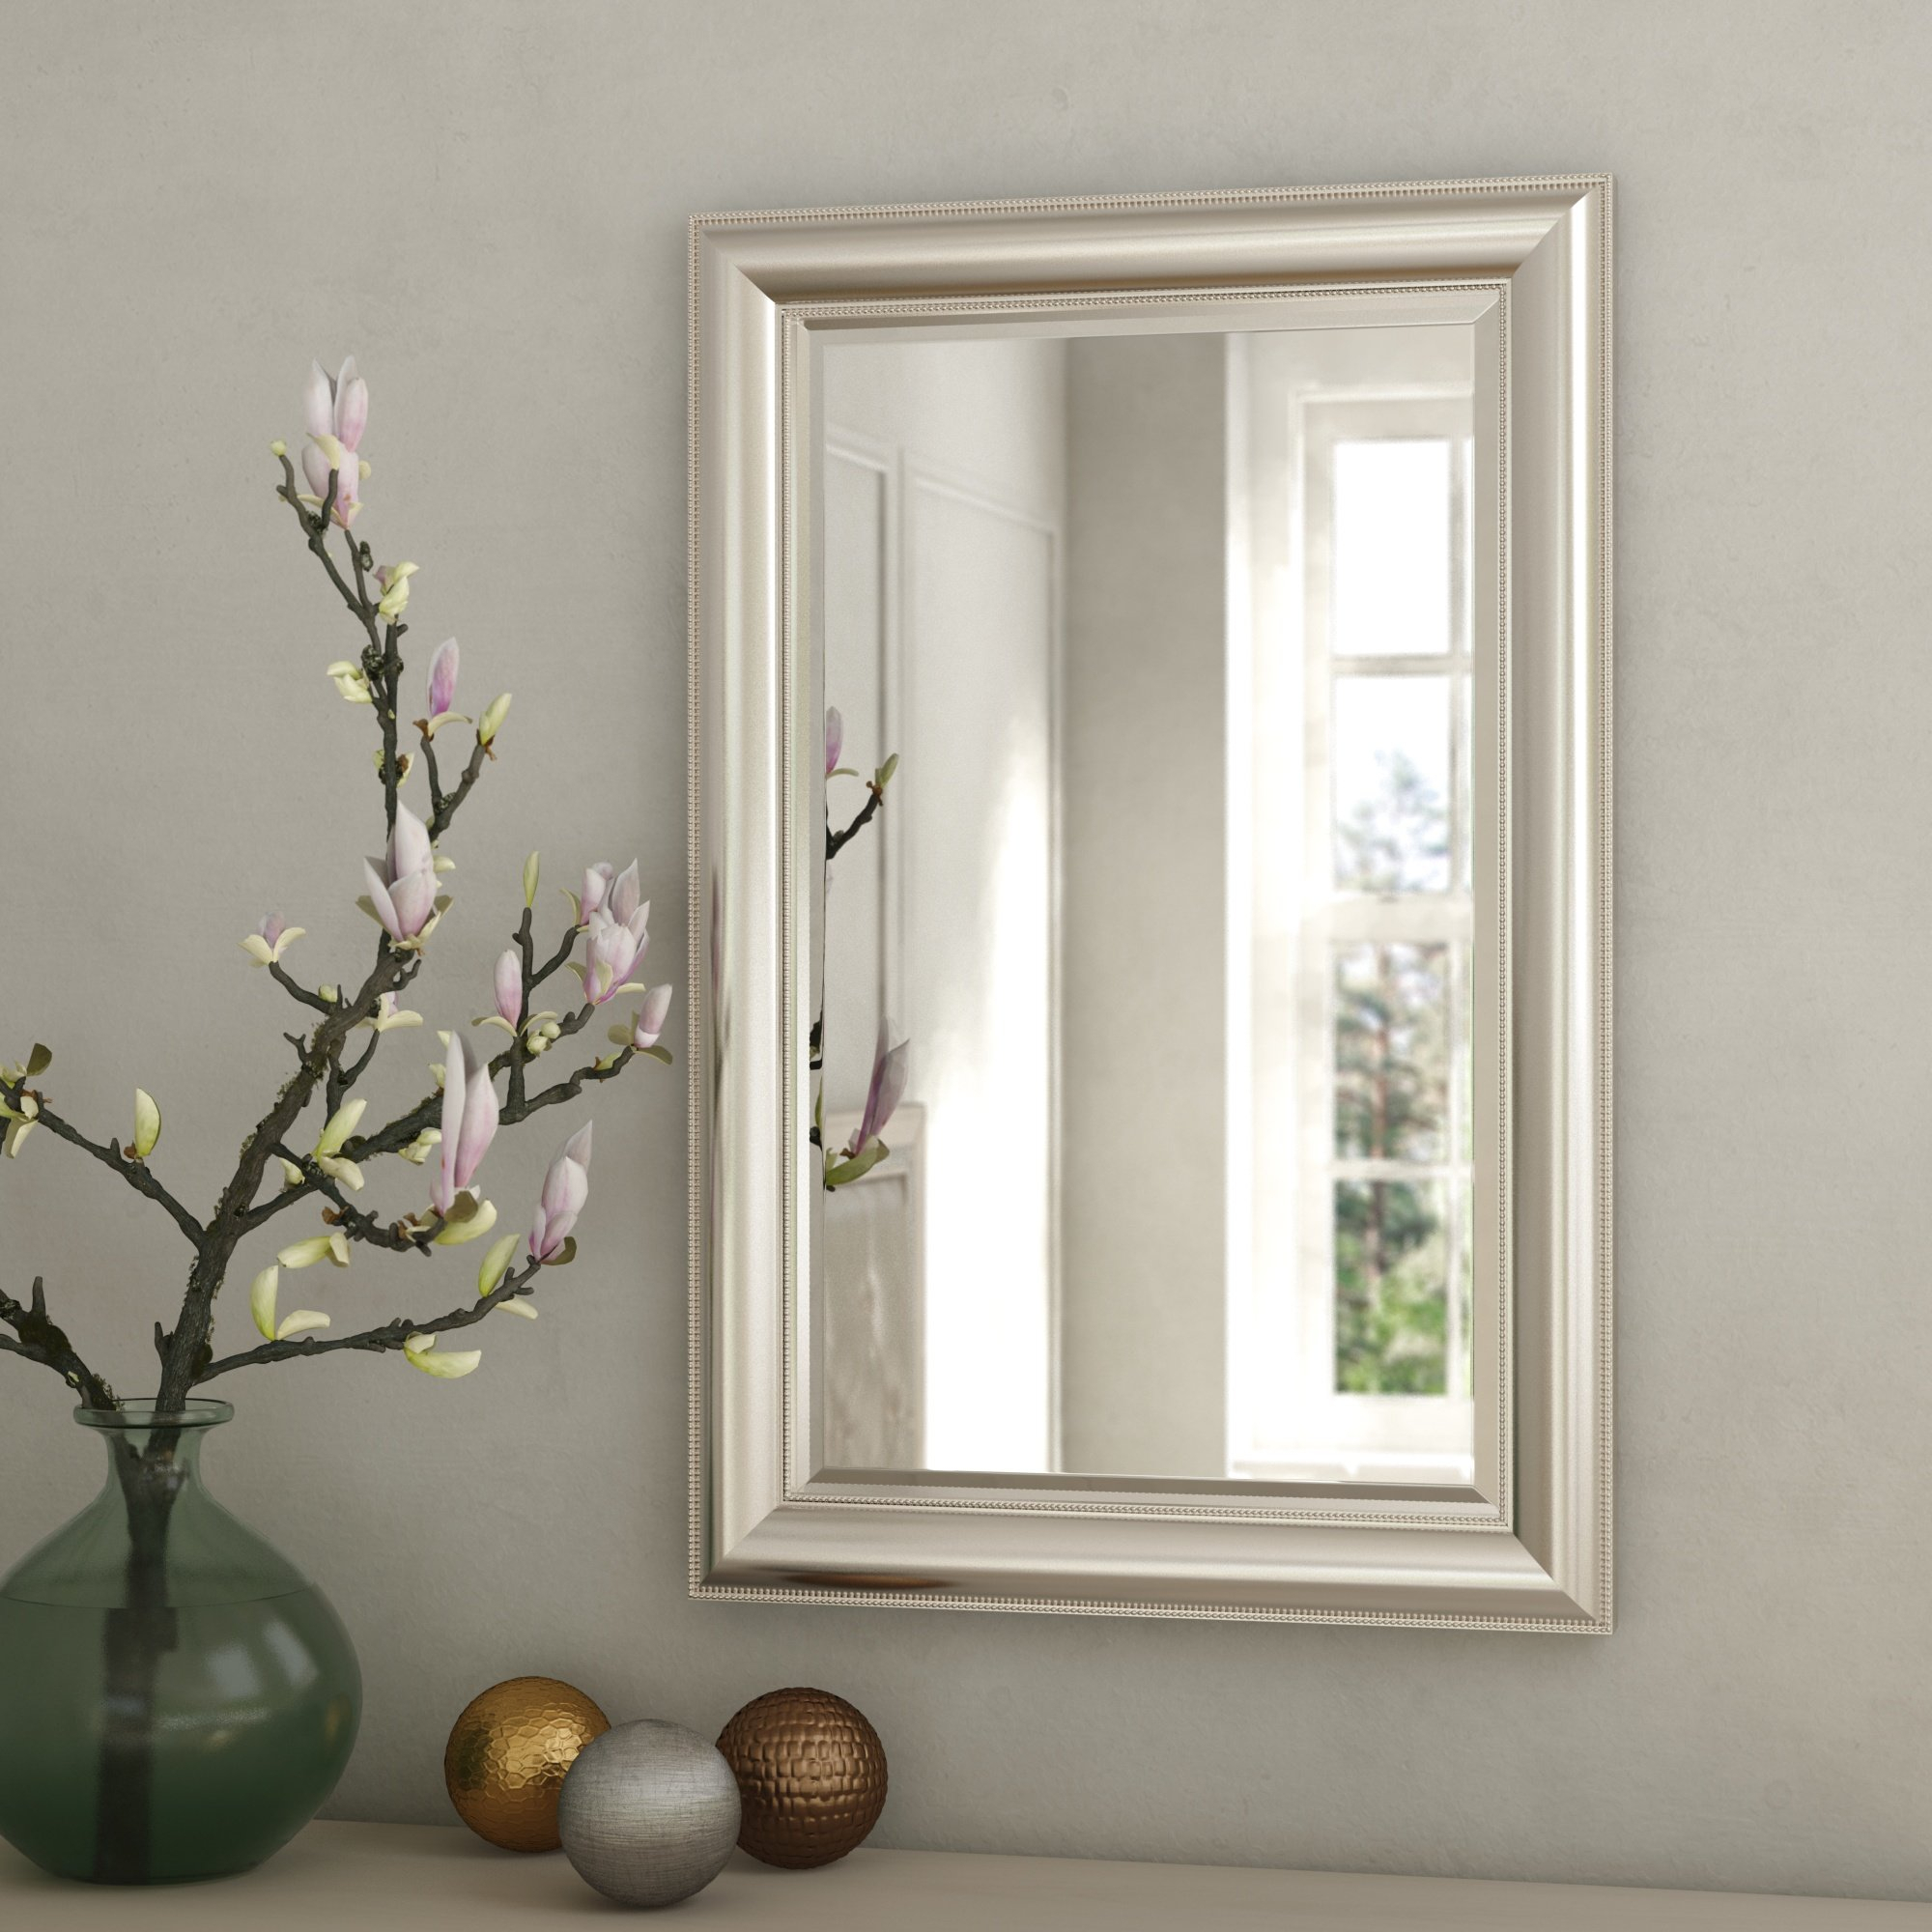 Rosdorf Park Beaded Accent Mirror & Reviews | Wayfair With Regard To Lake Park Beveled Beaded Accent Wall Mirrors (Gallery 8 of 30)